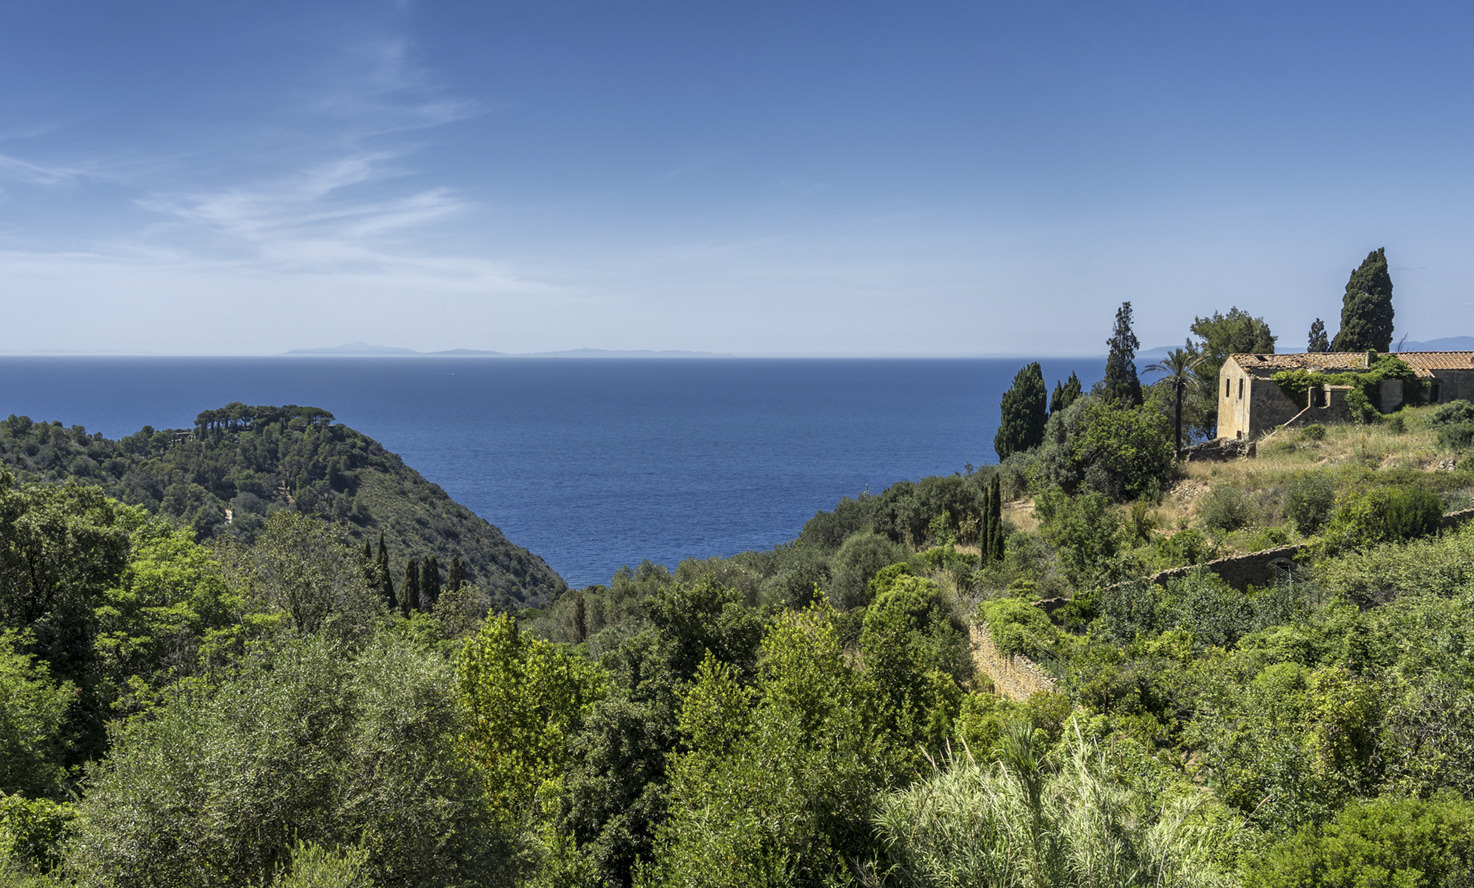 Tuscan landscape by the sea